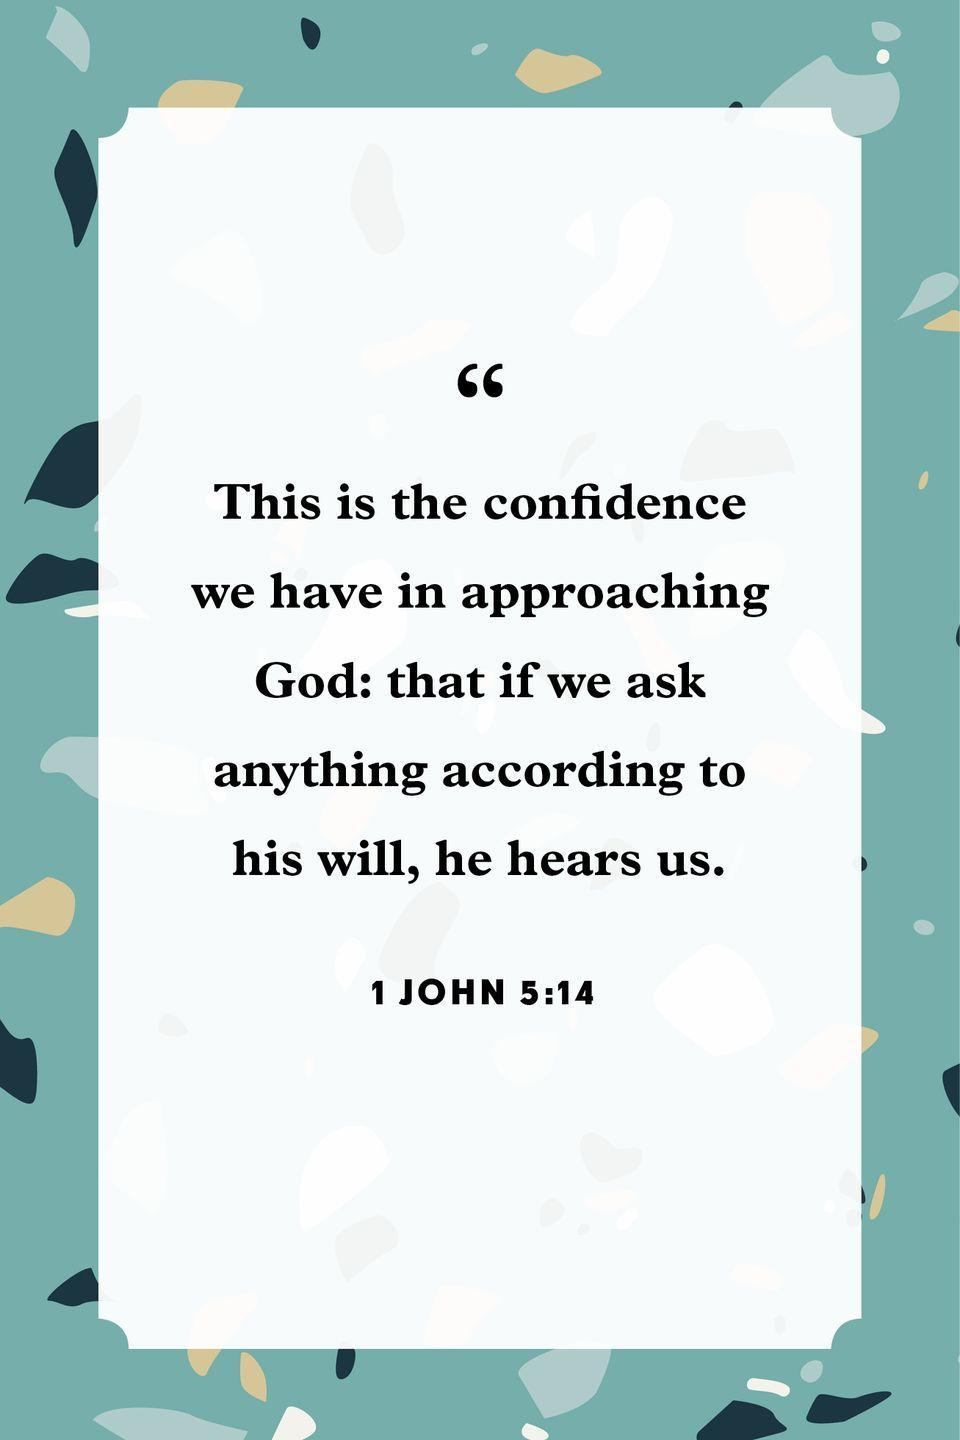 "<p>""This is the confidence we have in approaching God: that if we ask anything according to his will, he hears us.""</p>"